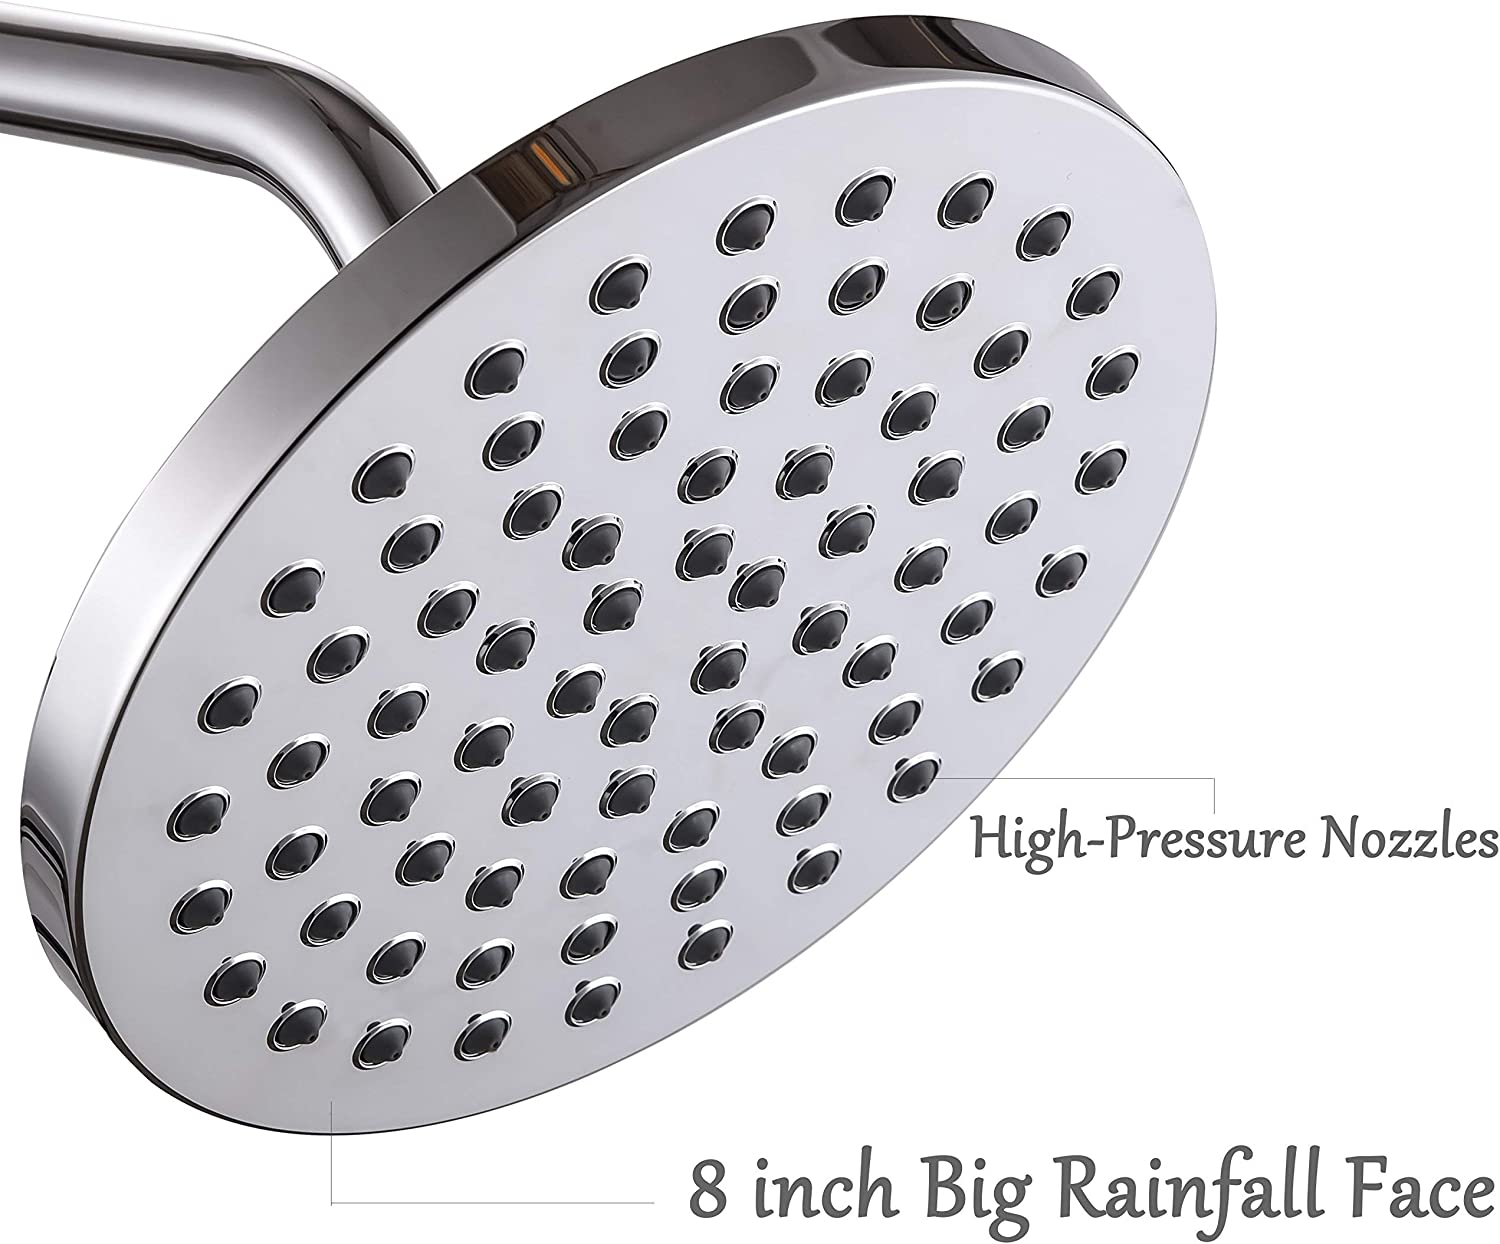 Arm Not Included 8 Inch Round Rain Shower Head High Pressure Rainfall Showerhead Adjustable Swivel Ball Joint Easy Install Chrome Finish Stainless Steel Back